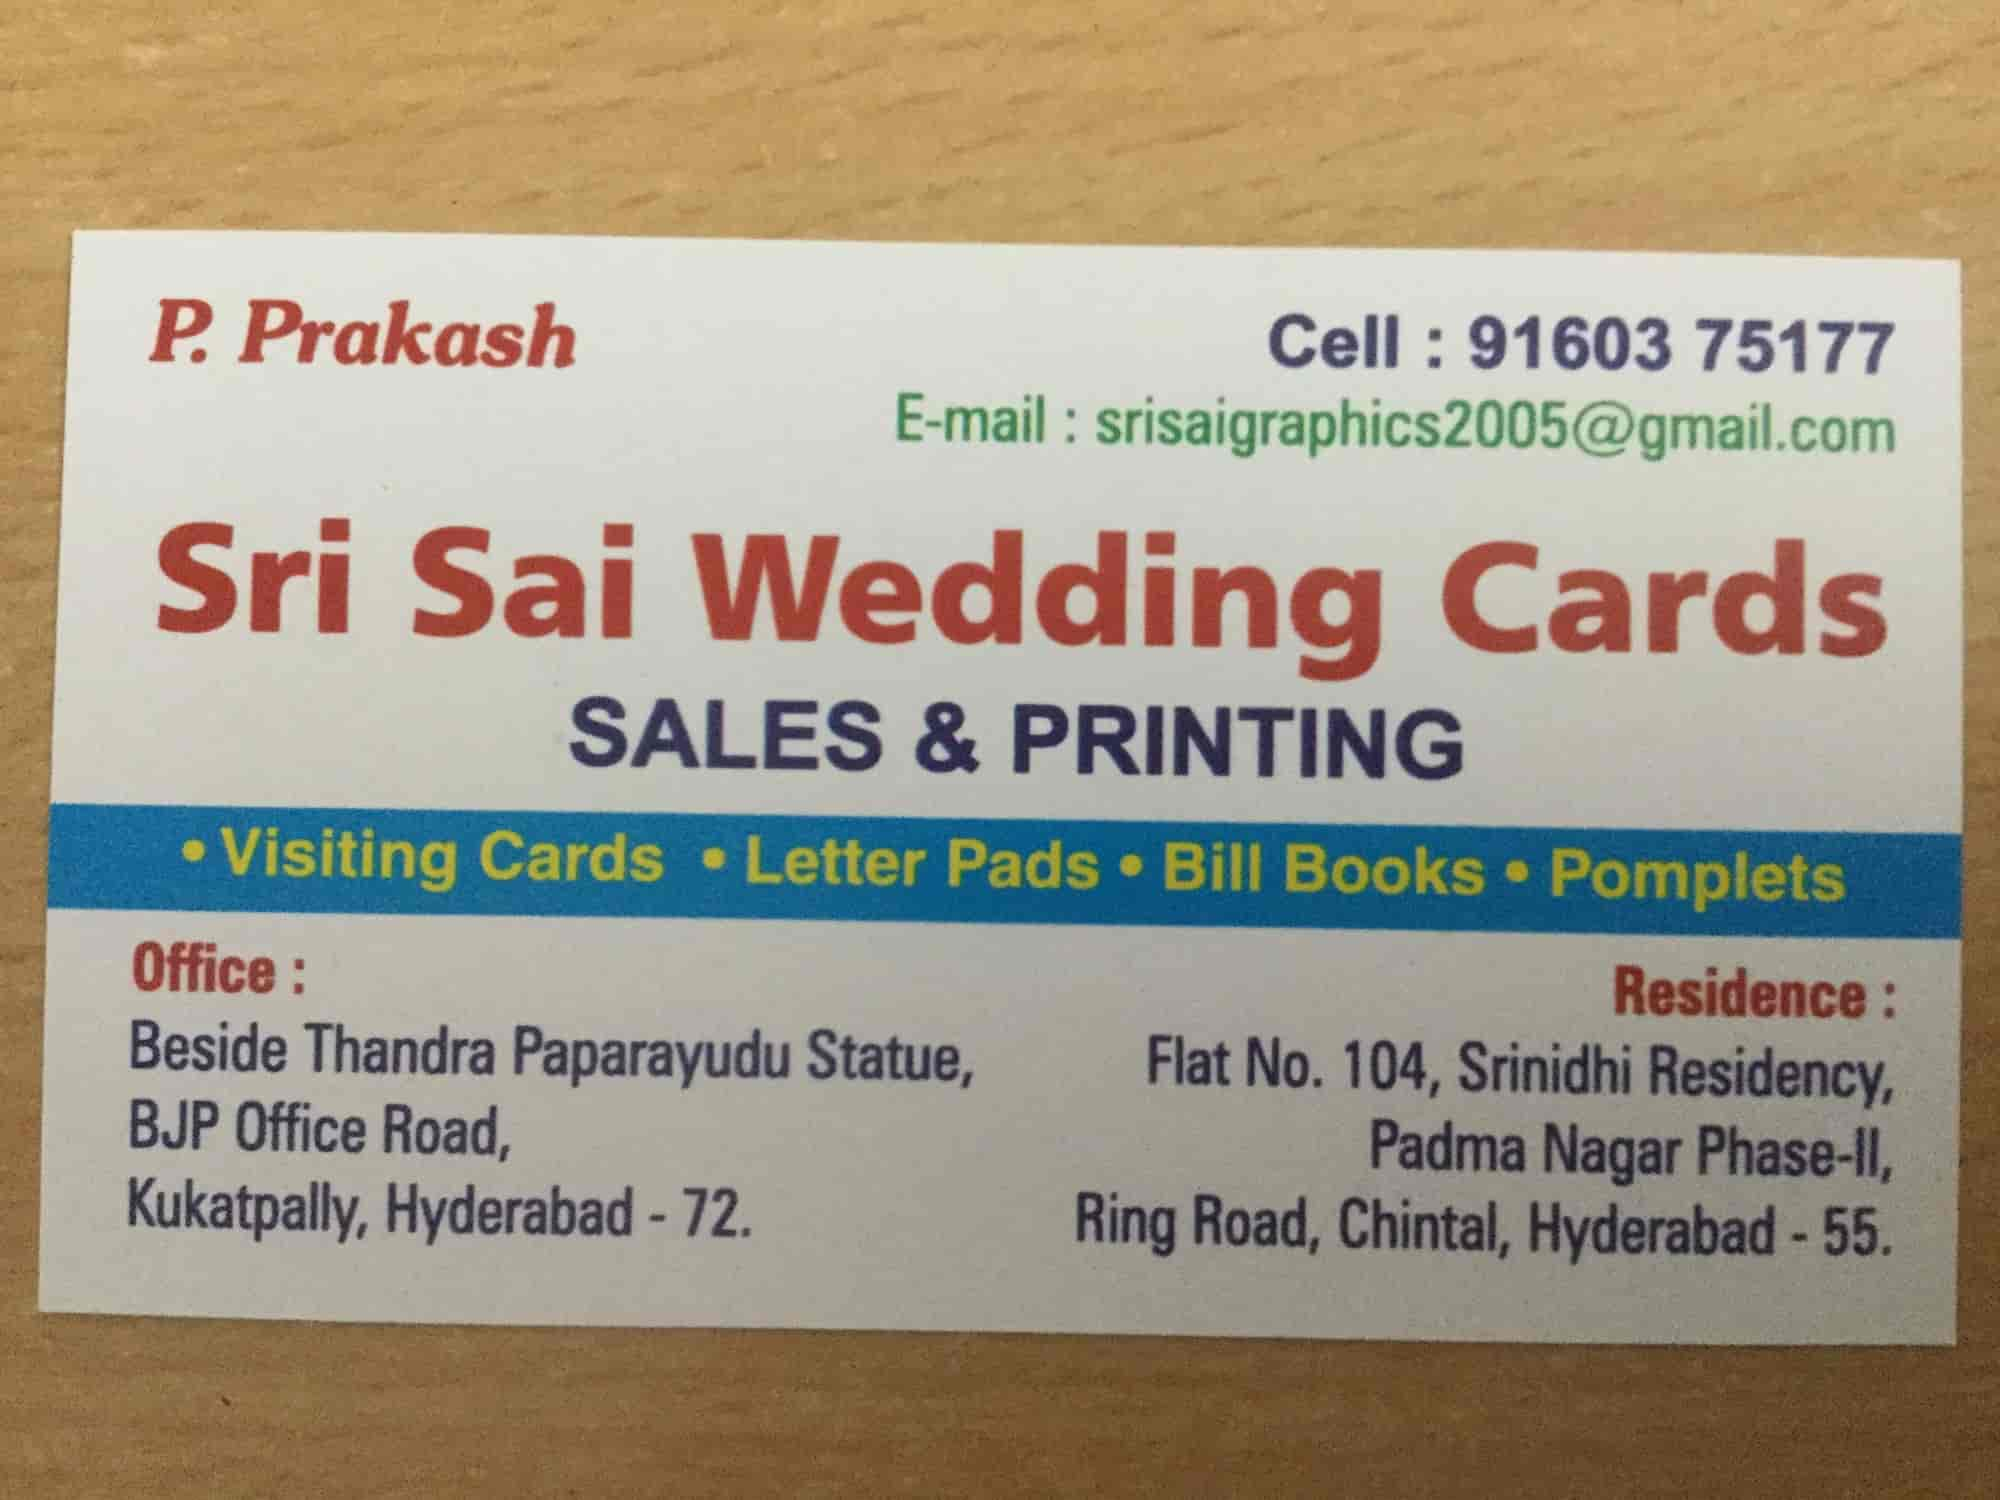 Sri Sai Wedding Cards, Kukatpally - Printers For Visiting Card in ...